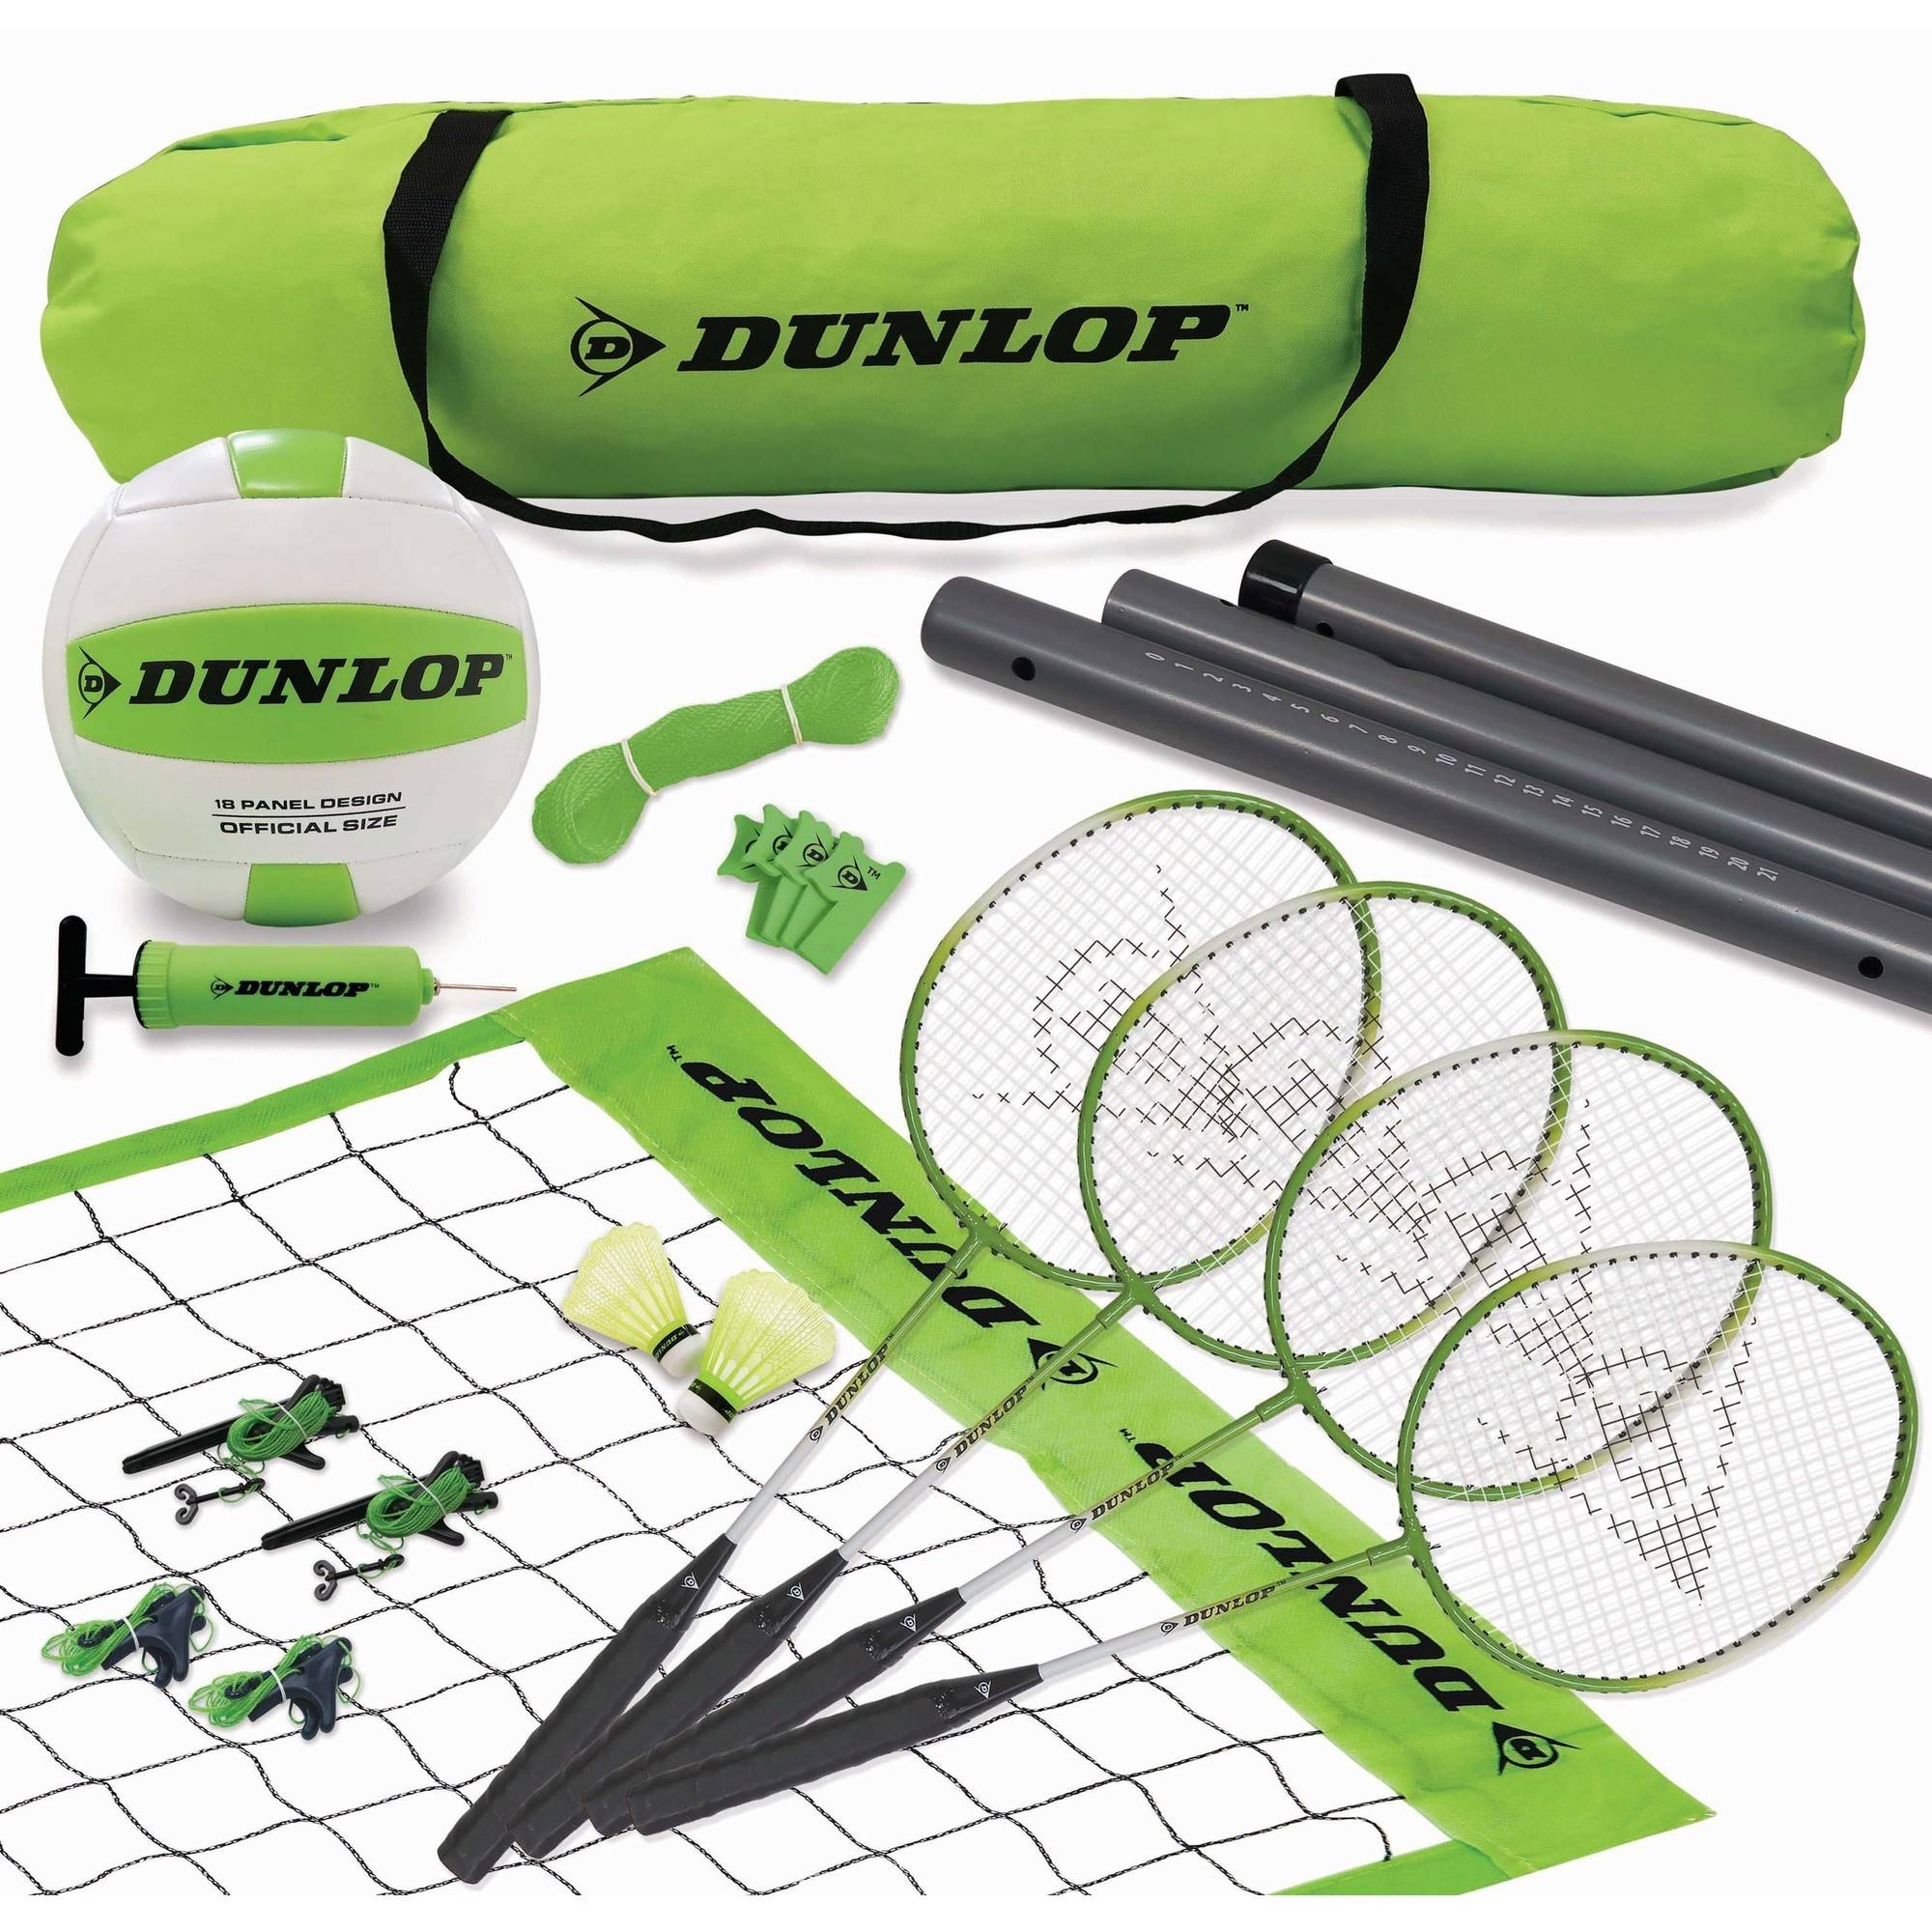 Dunlop Volleyball and Badminton Combo by Medal Sports